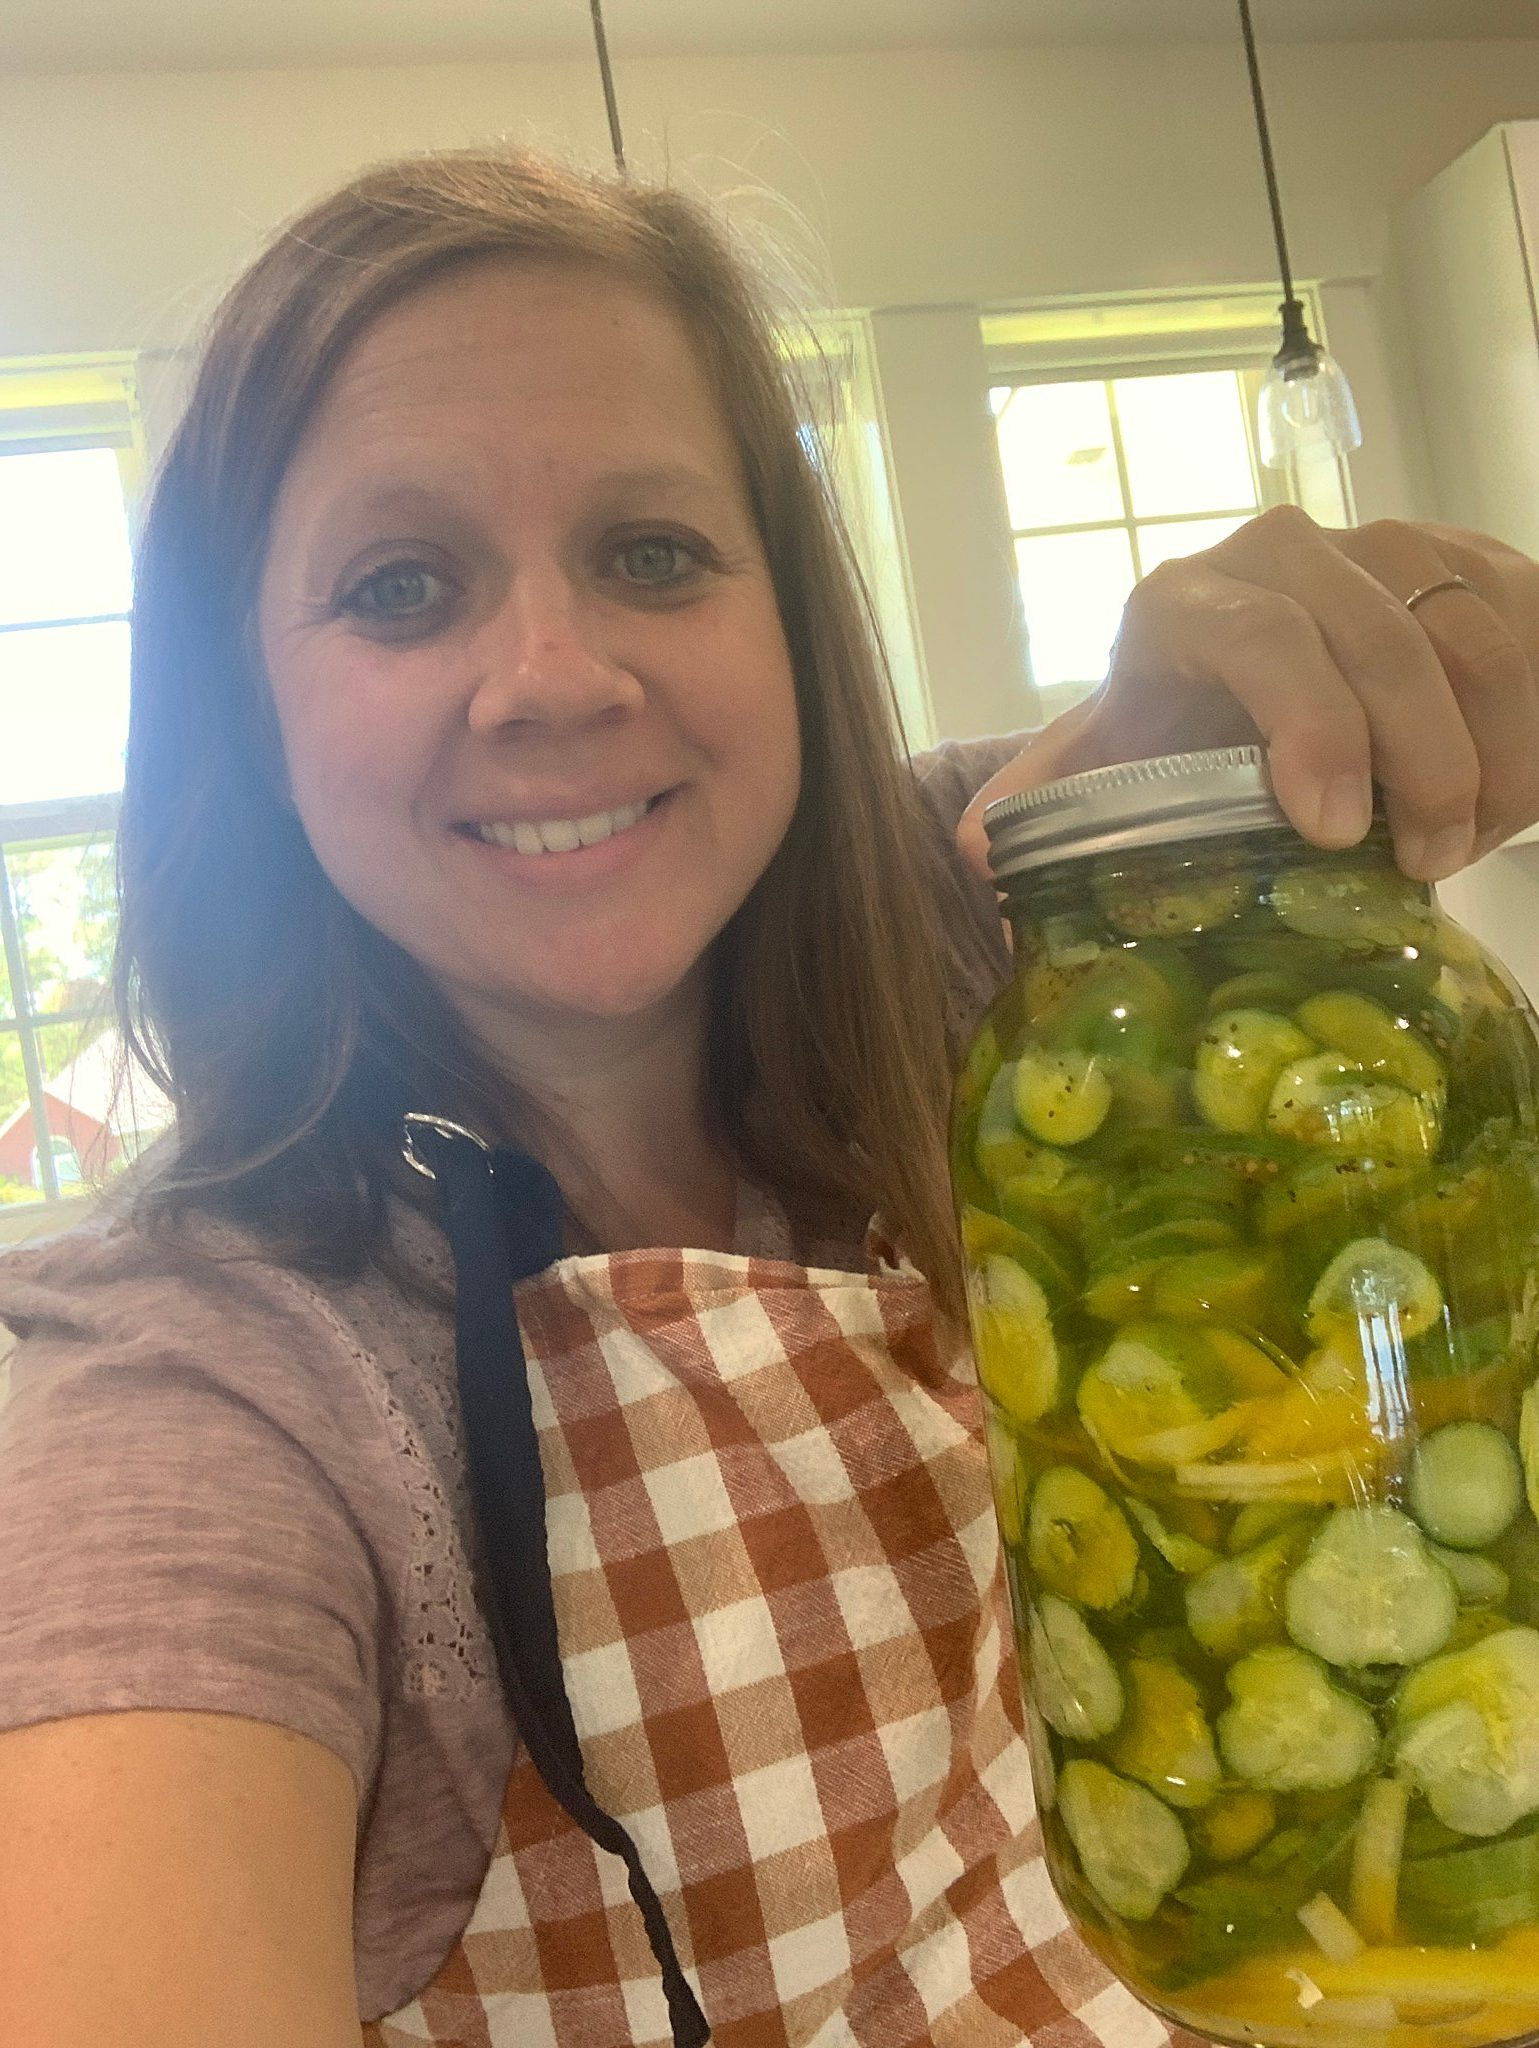 jar of sweet pickles for learning to can and preserve